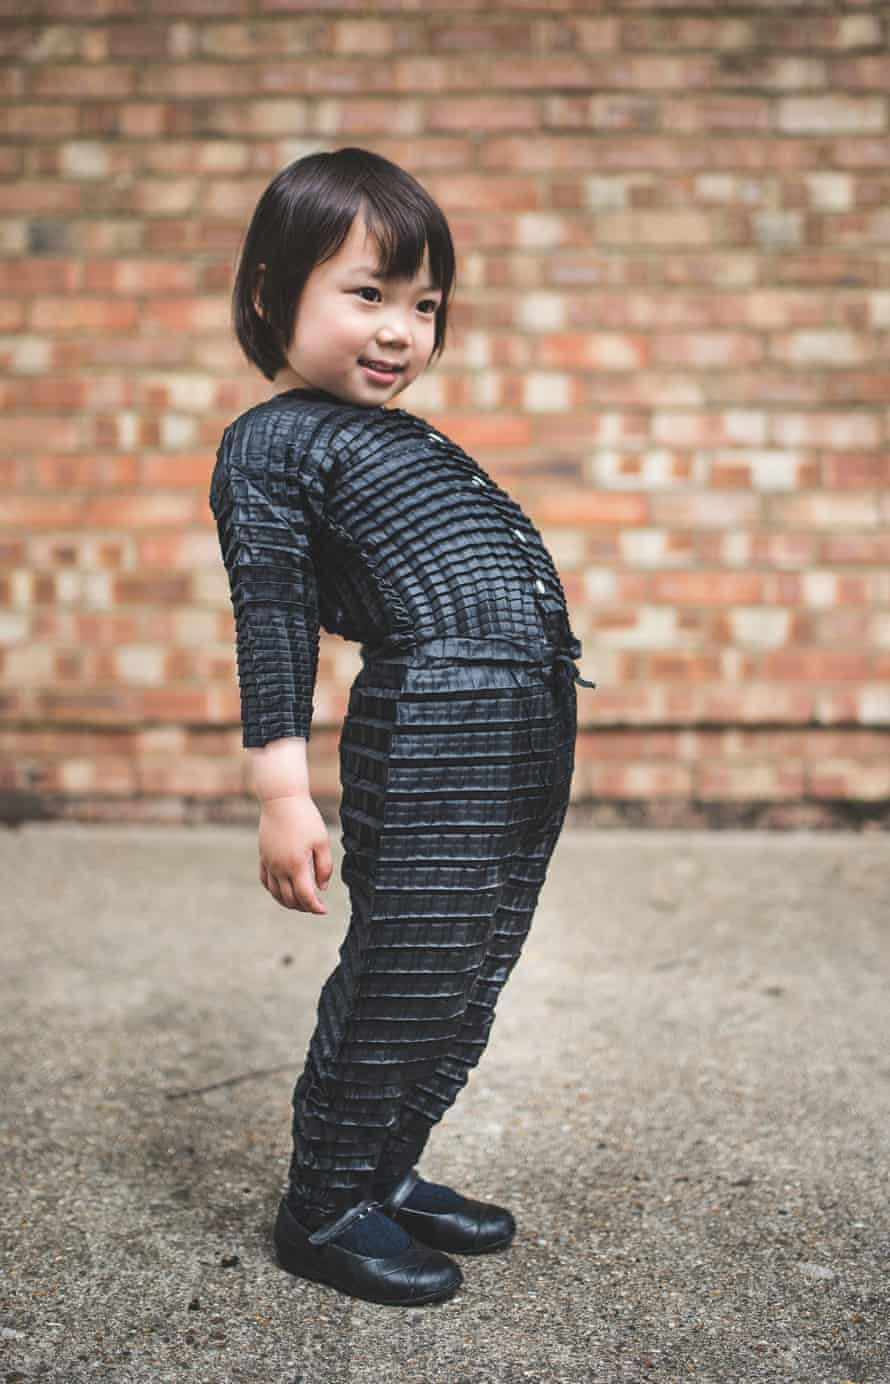 The clothes are made to stretch to fit children